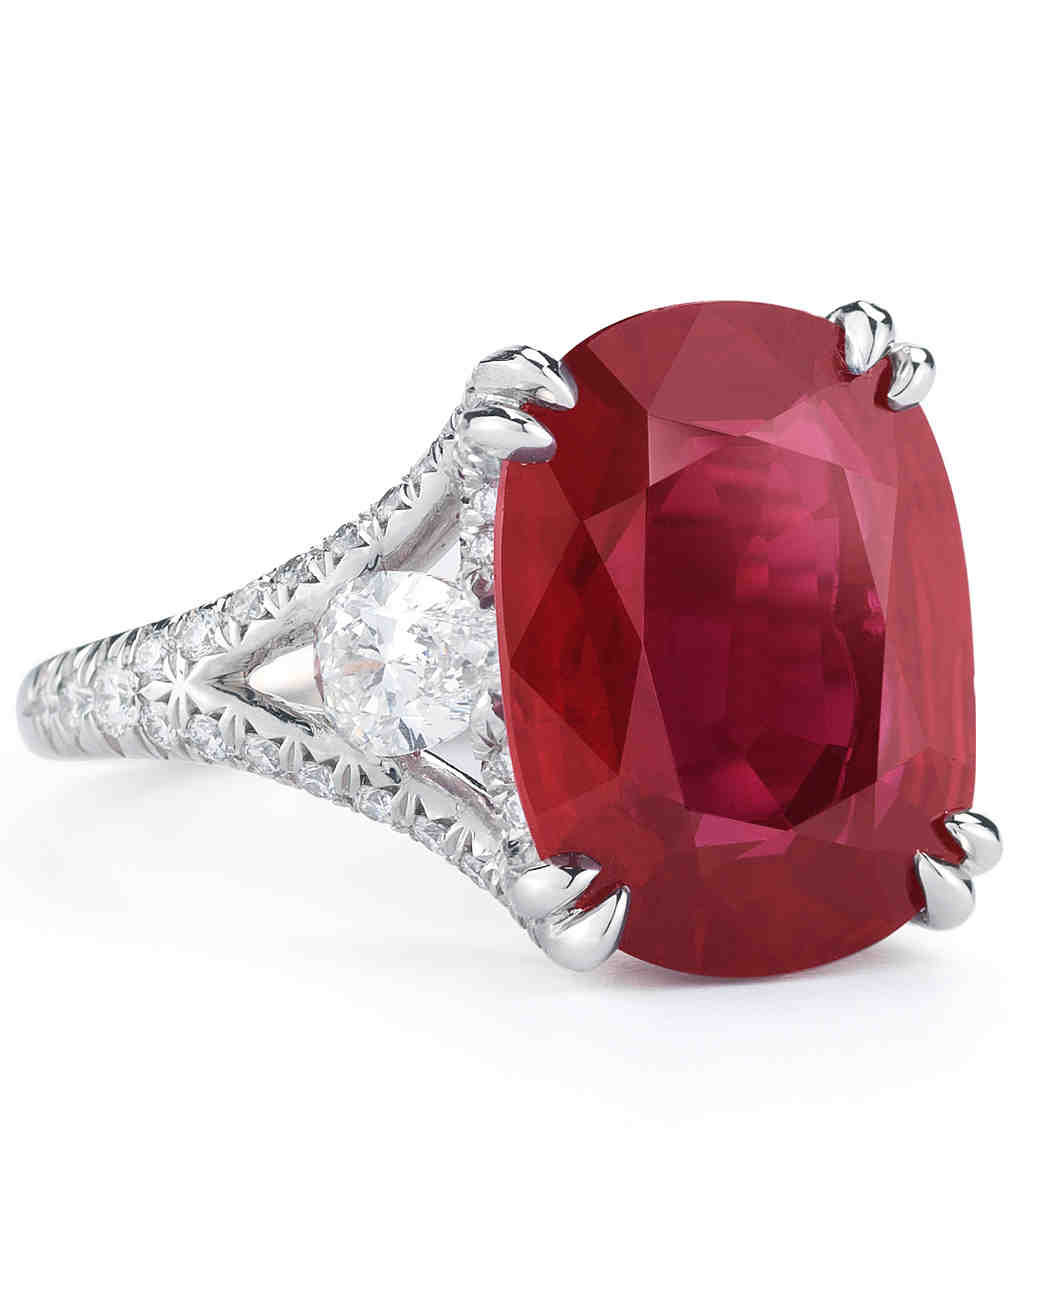 McTeigue & McClelland Ruby & Diamond Lotus Engagement Ring